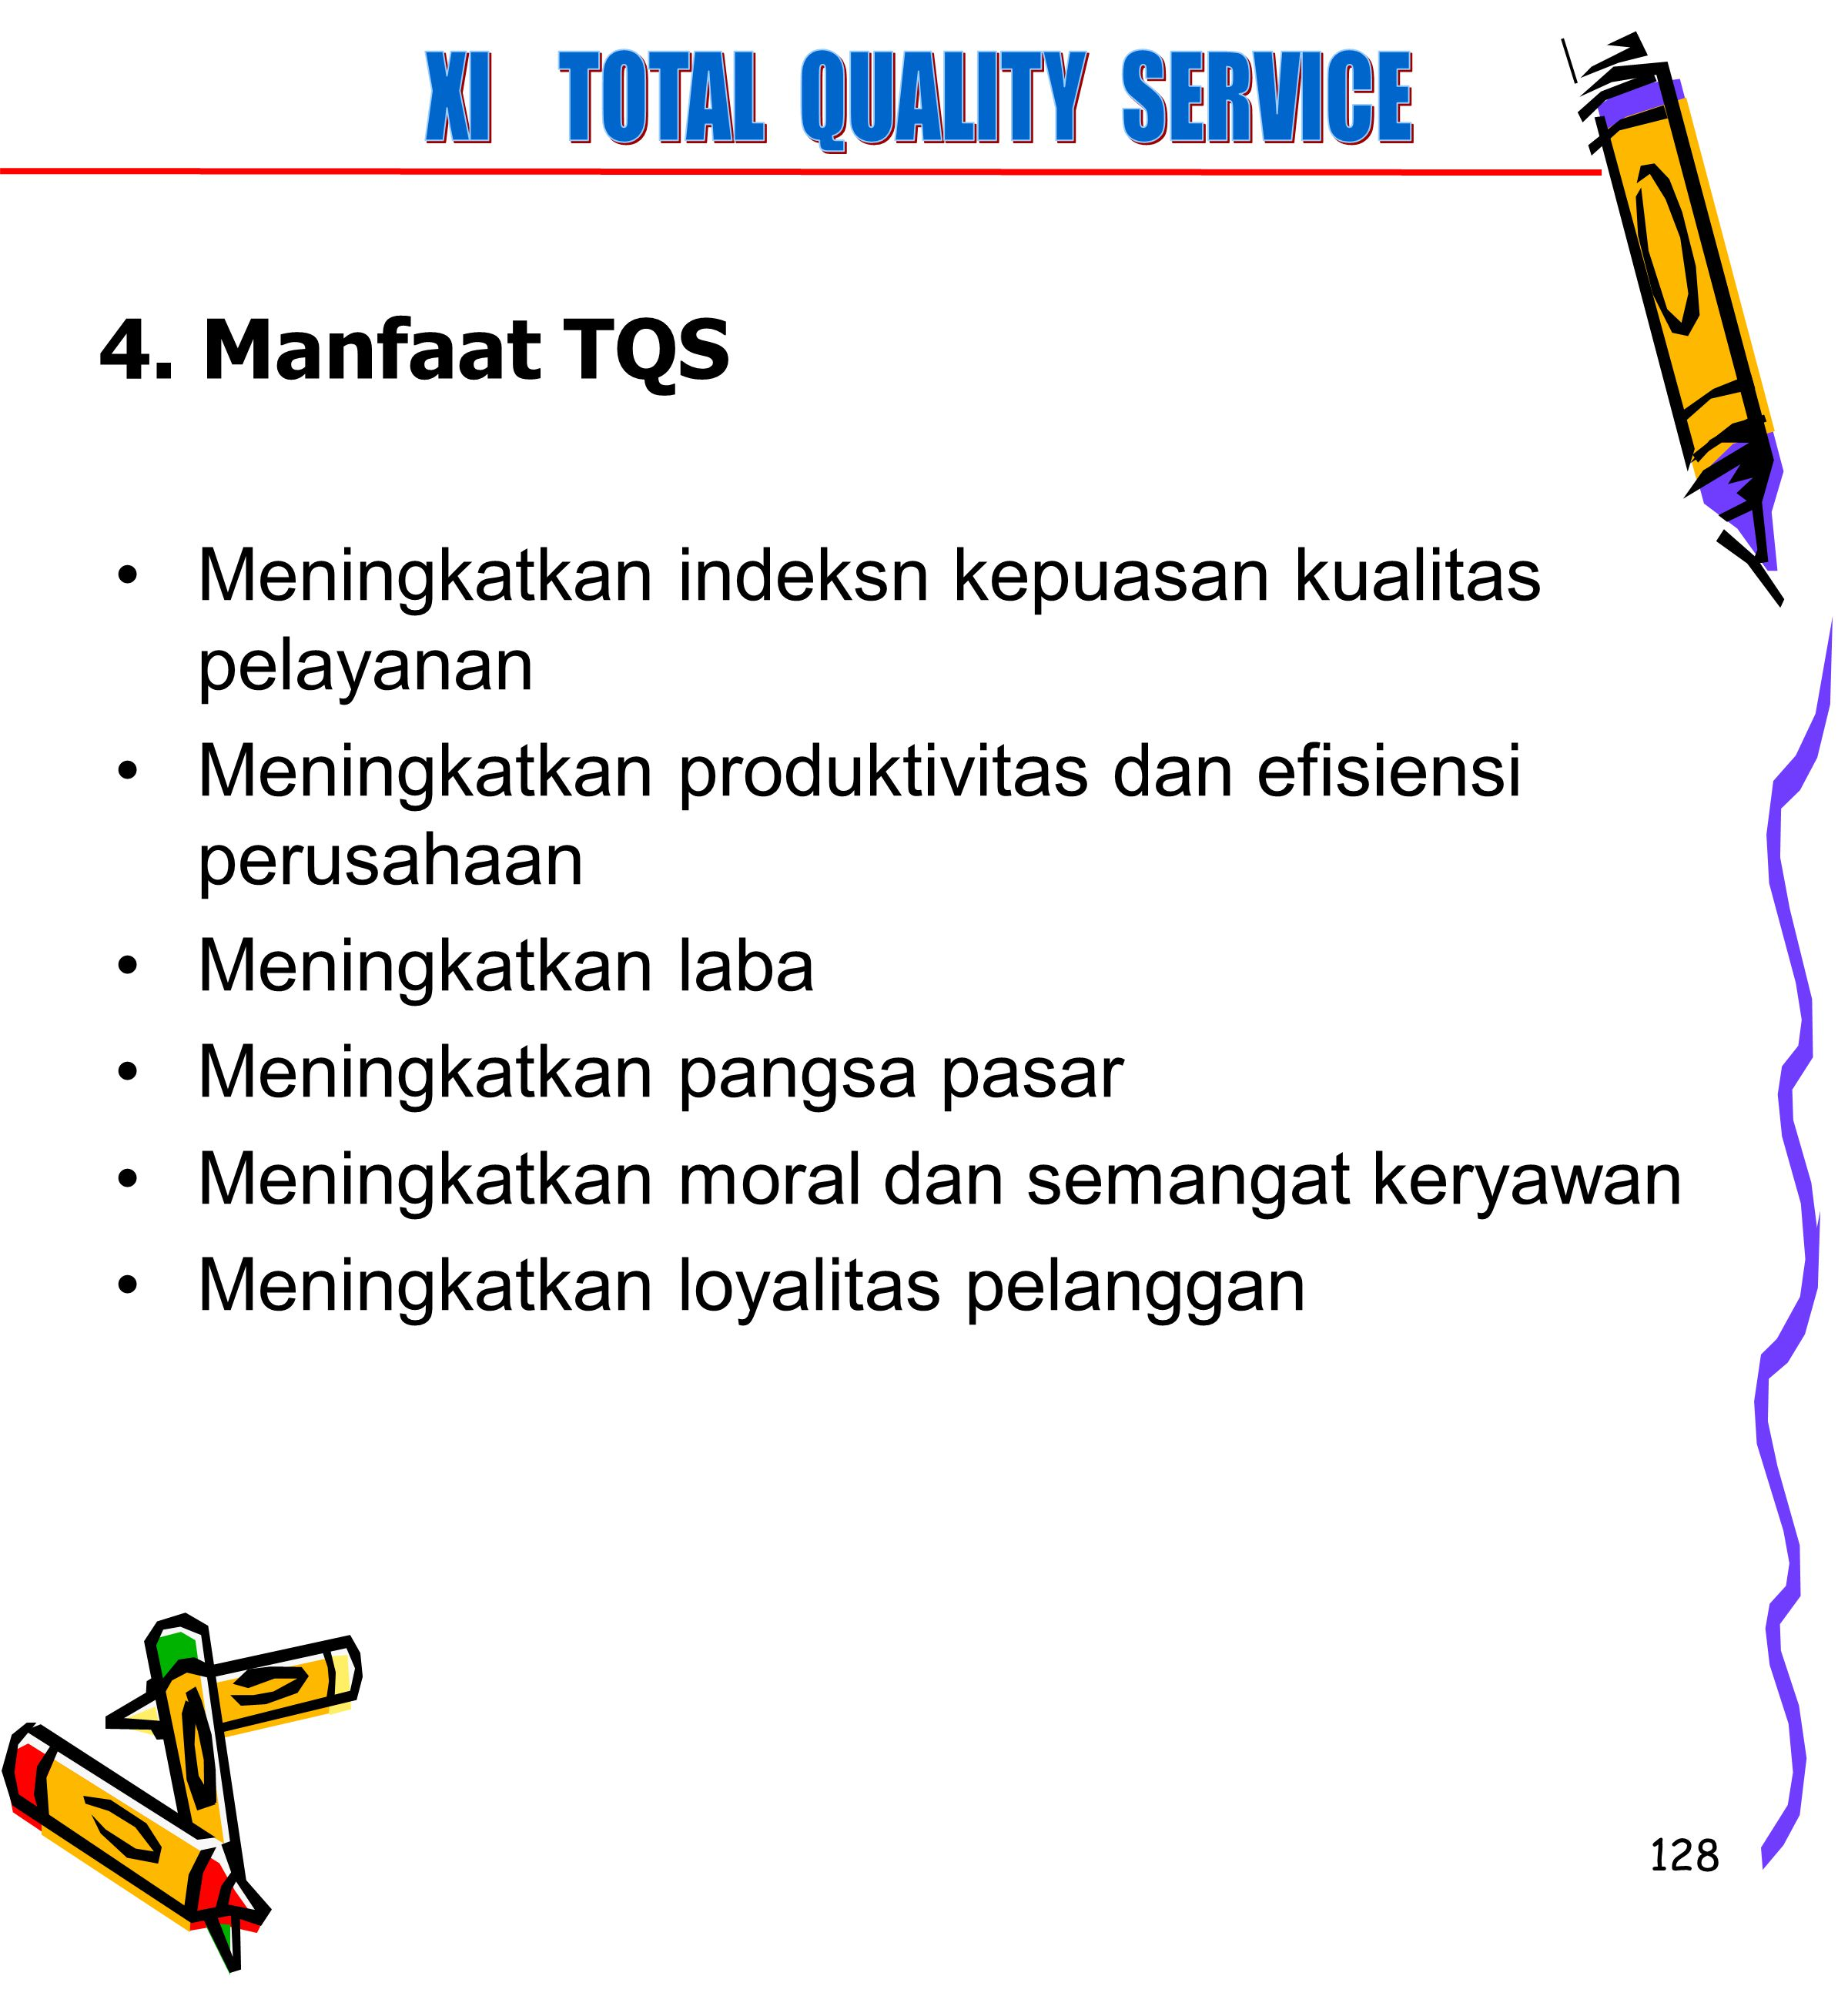 XI TOTAL QUALITY SERVICE